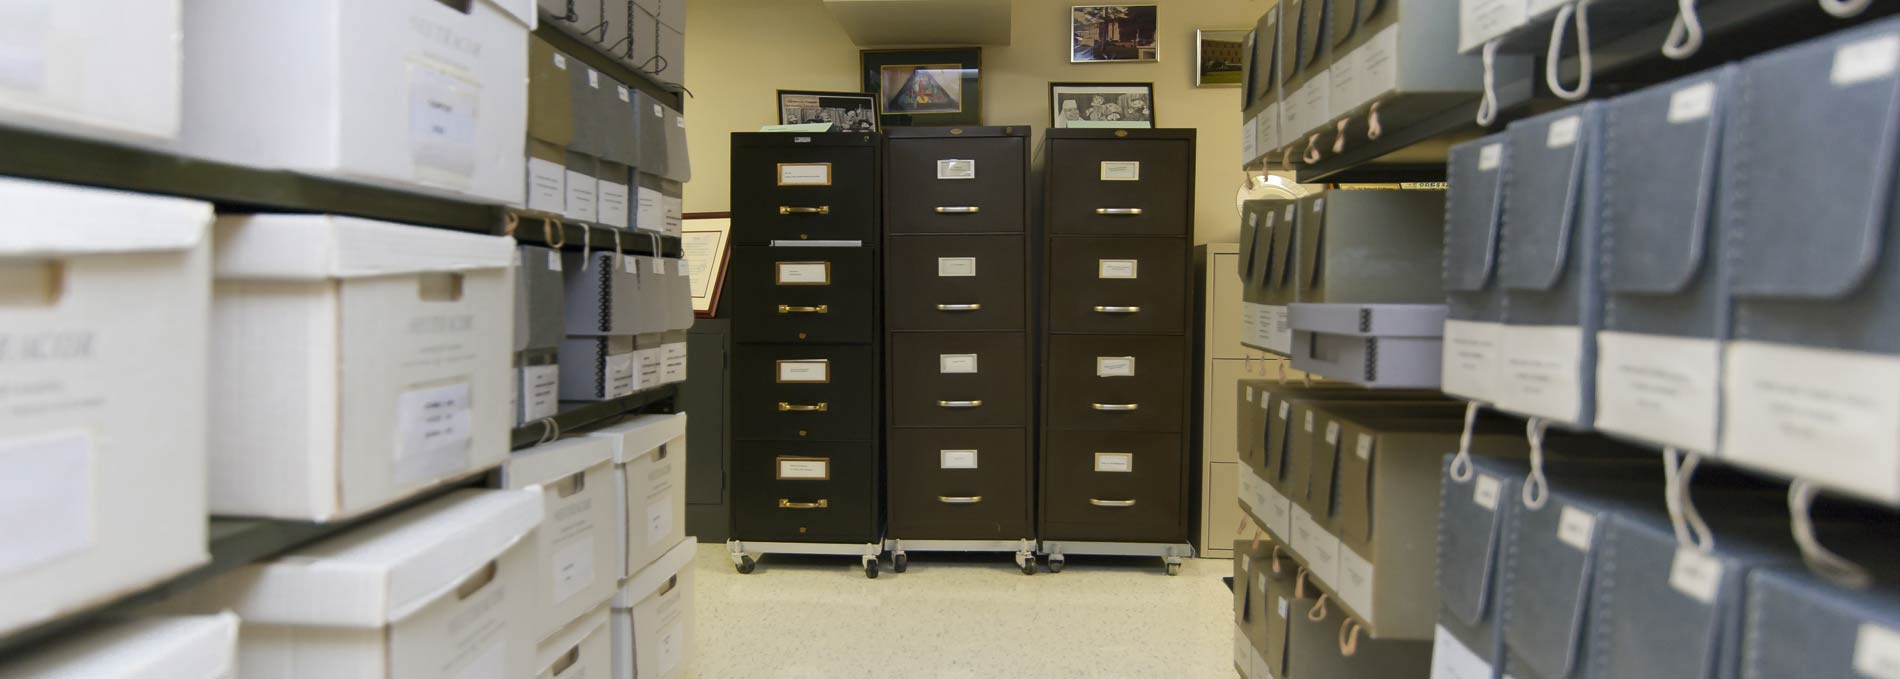 About The Archives